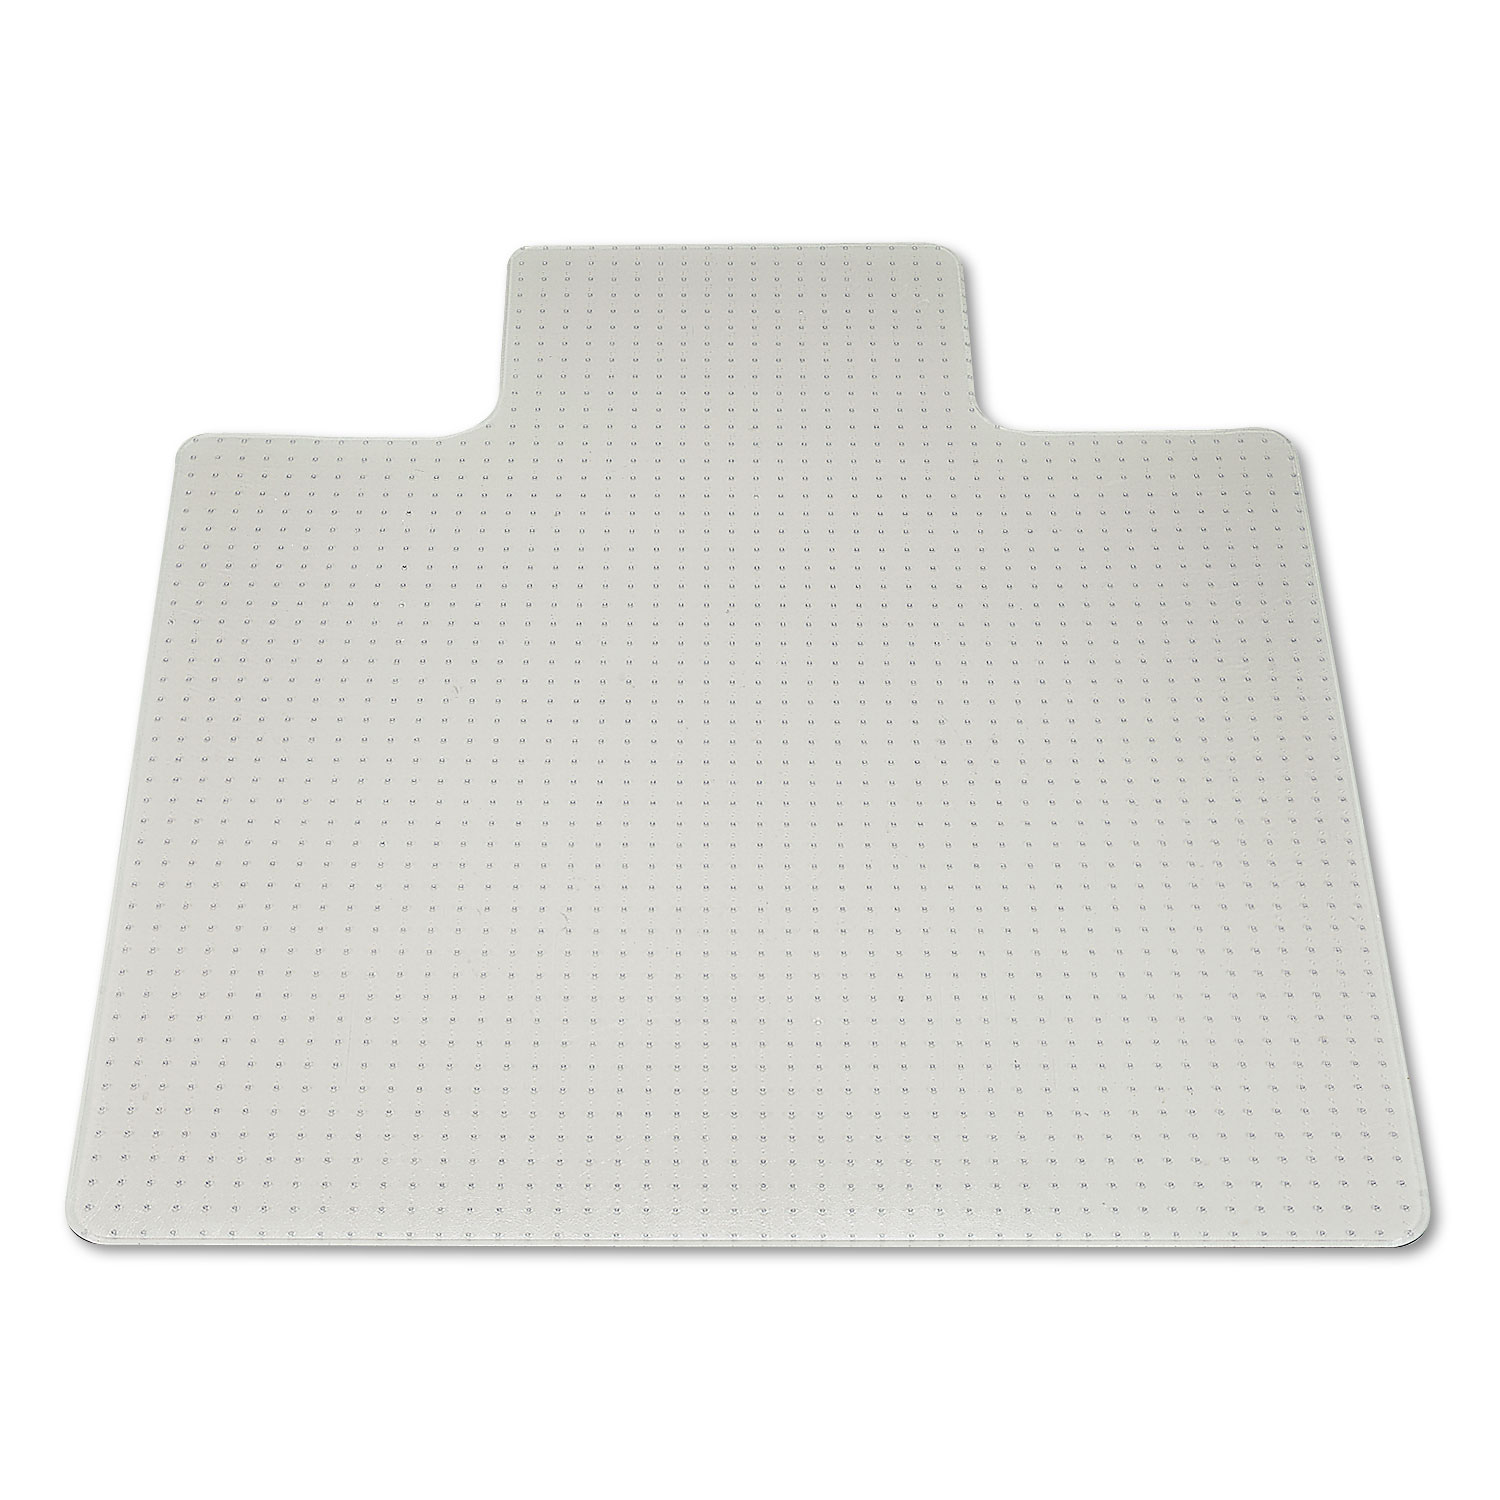 Heavy Duty Chair Mat By Abilityone Nsn3053062 Ontimesupplies Com